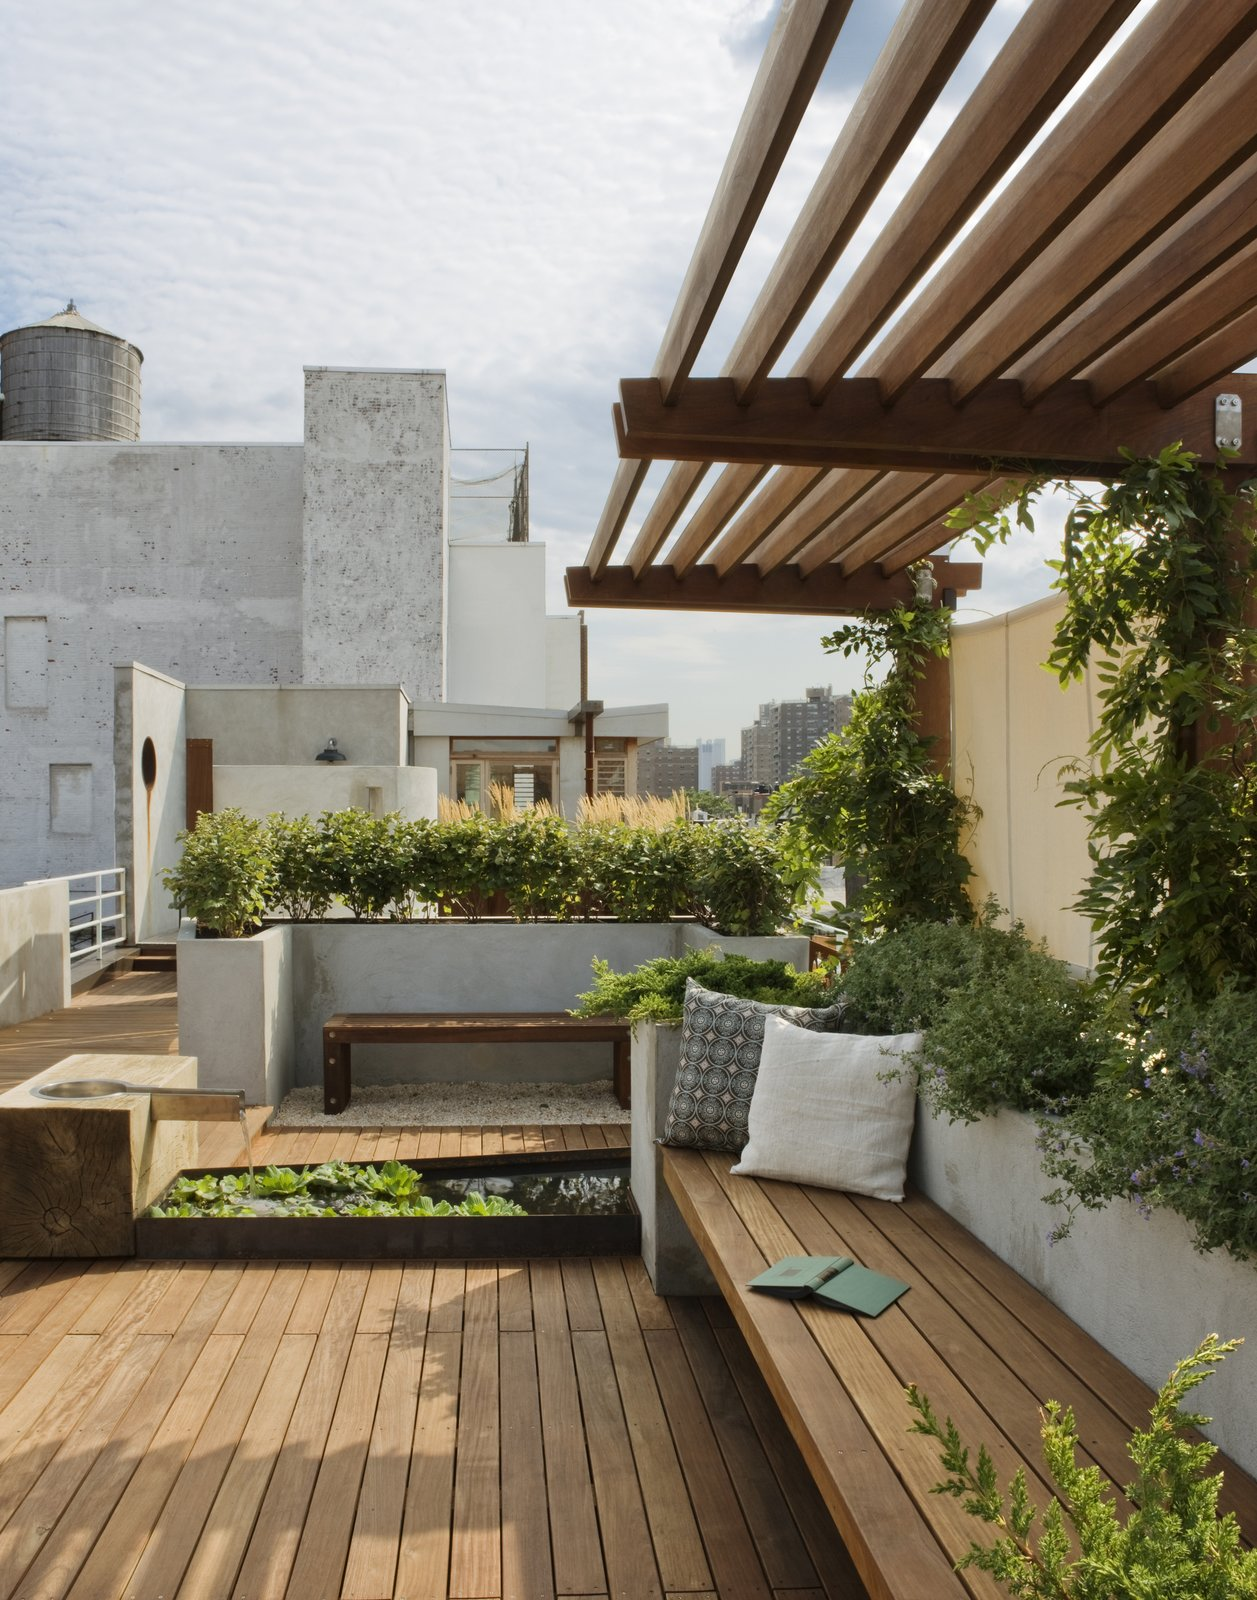 Outdoor, Rooftop, Raised Planters, Gardens, Walkways, Shrubs, Small Patio, Porch, Deck, Wood Patio, Porch, Deck, and Decking Patio, Porch, Deck A view looking south toward the penthouse addition.  The pergola is planted with wisteria providing a welcoming shade.  East Village Roof Garden